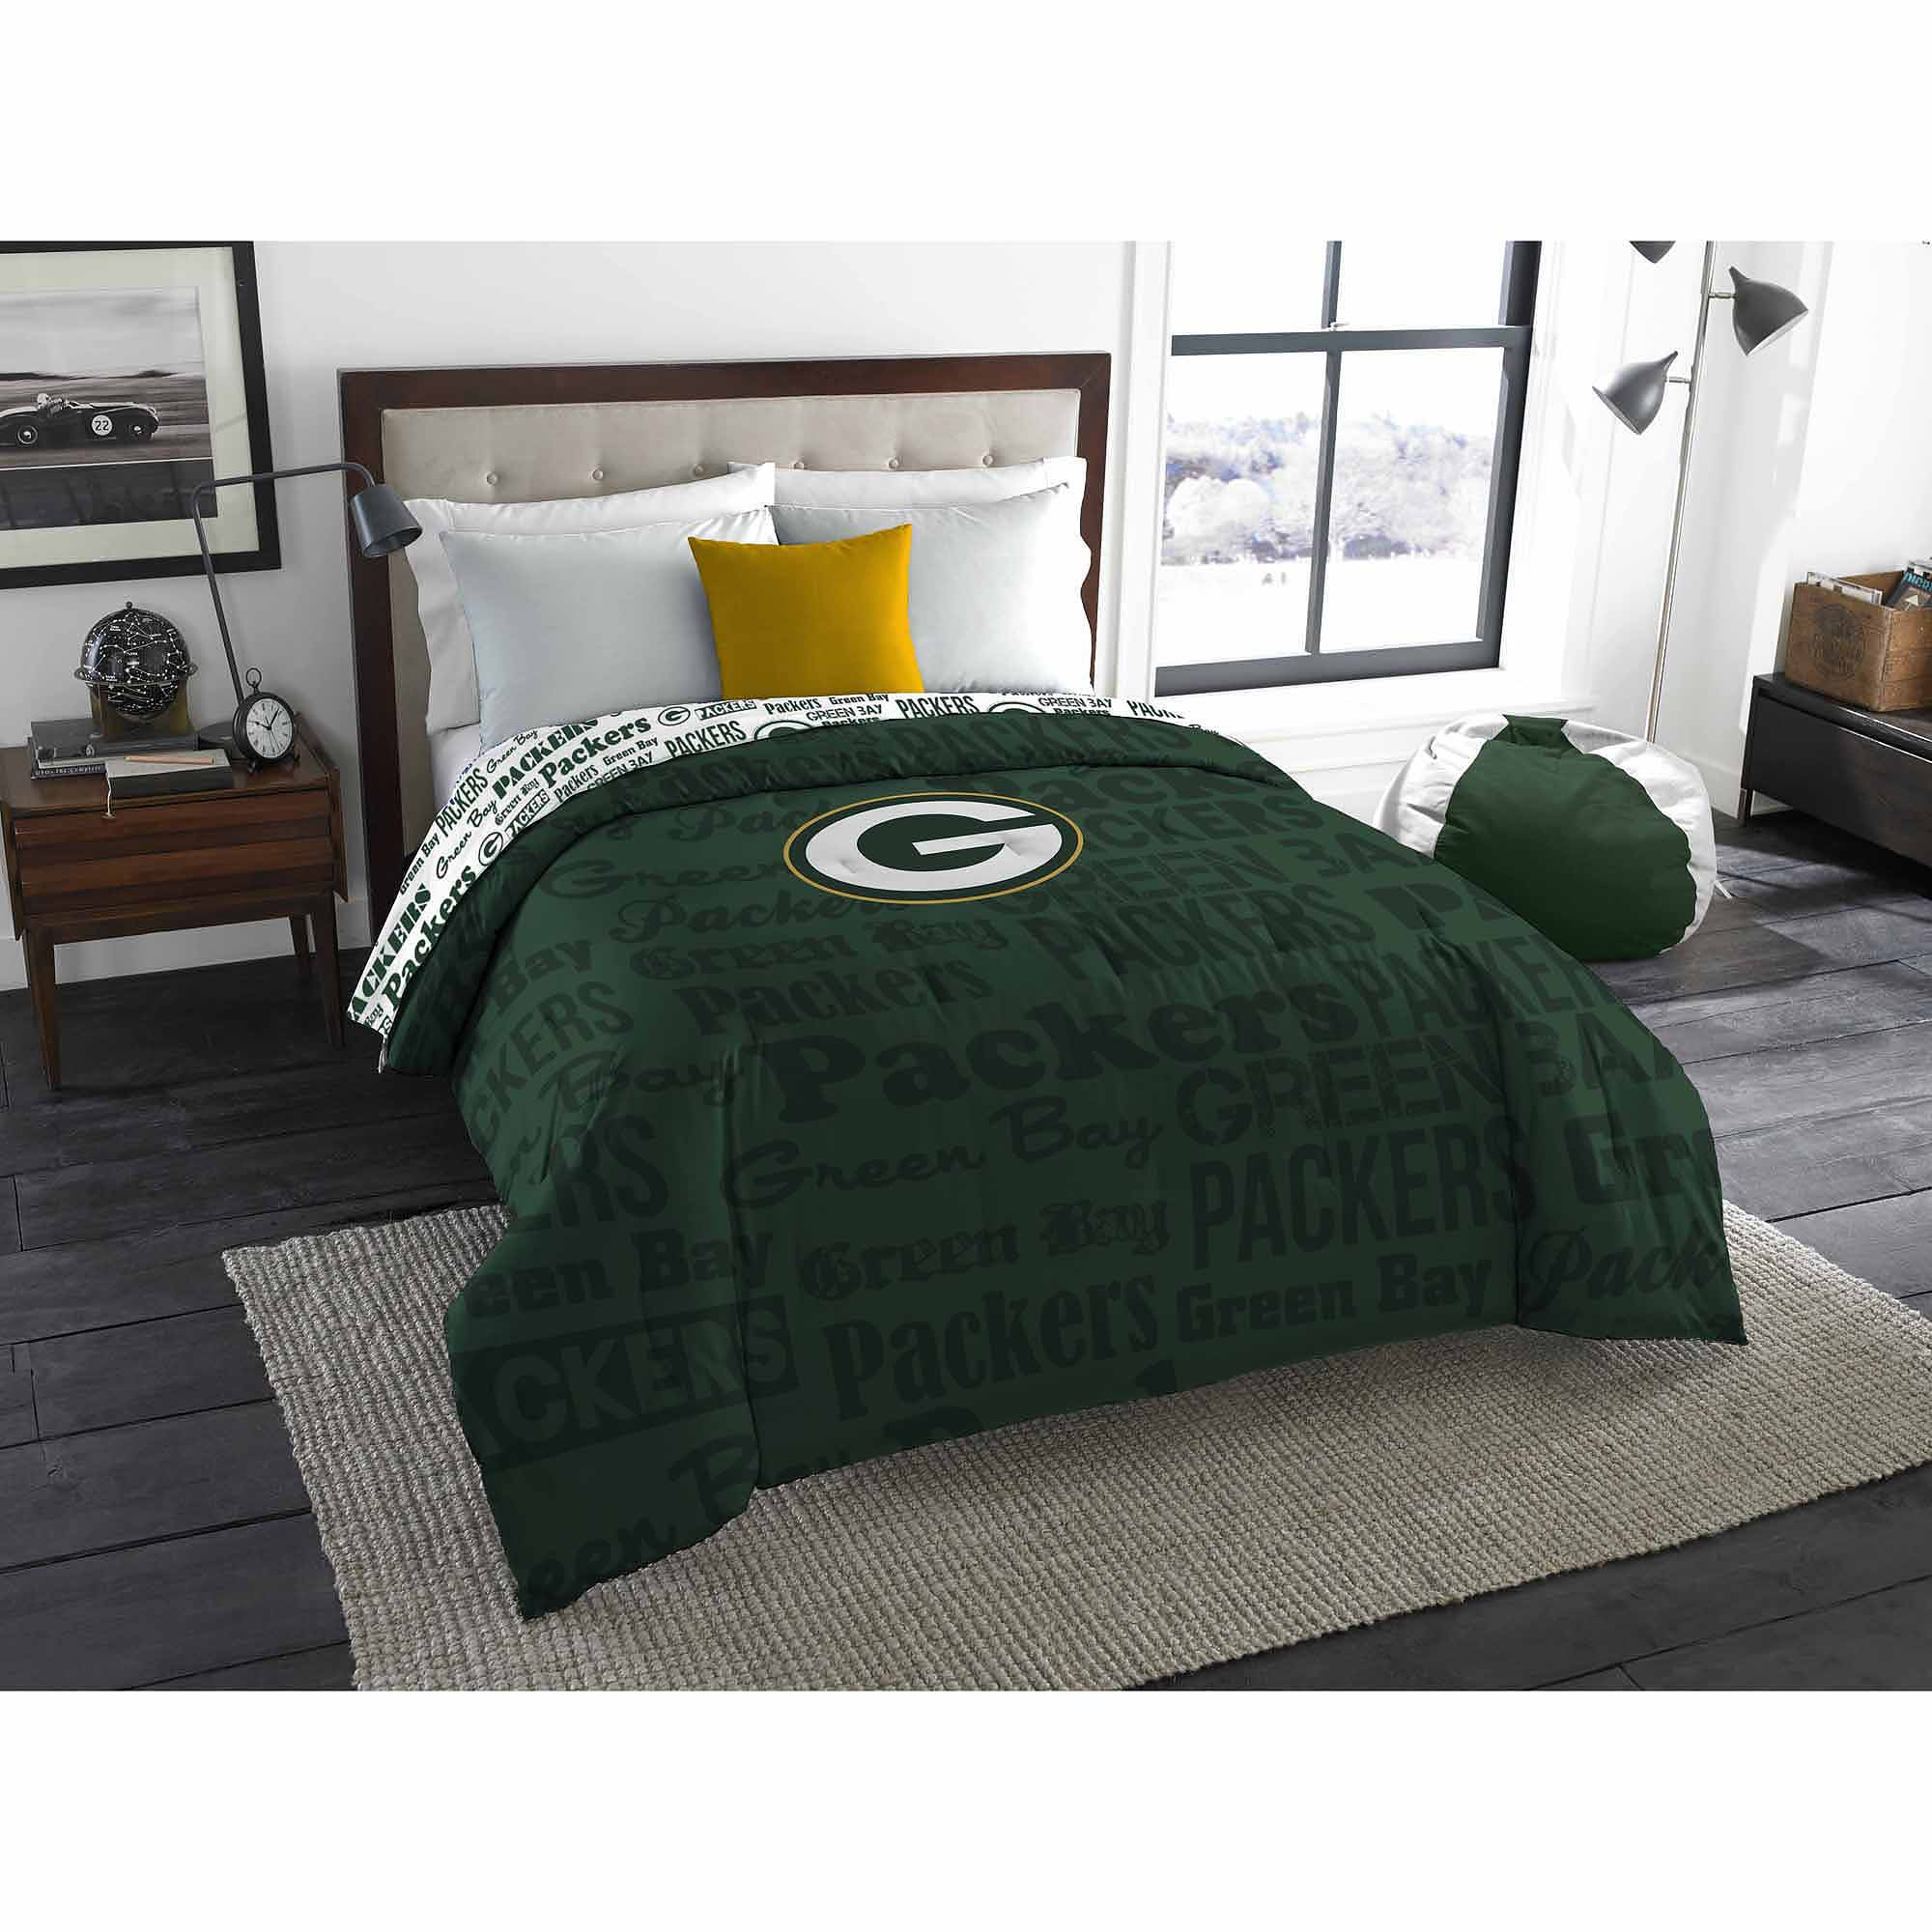 NFL Green Bay Packers Twin/Full Bedding Comforter   Walmart.com